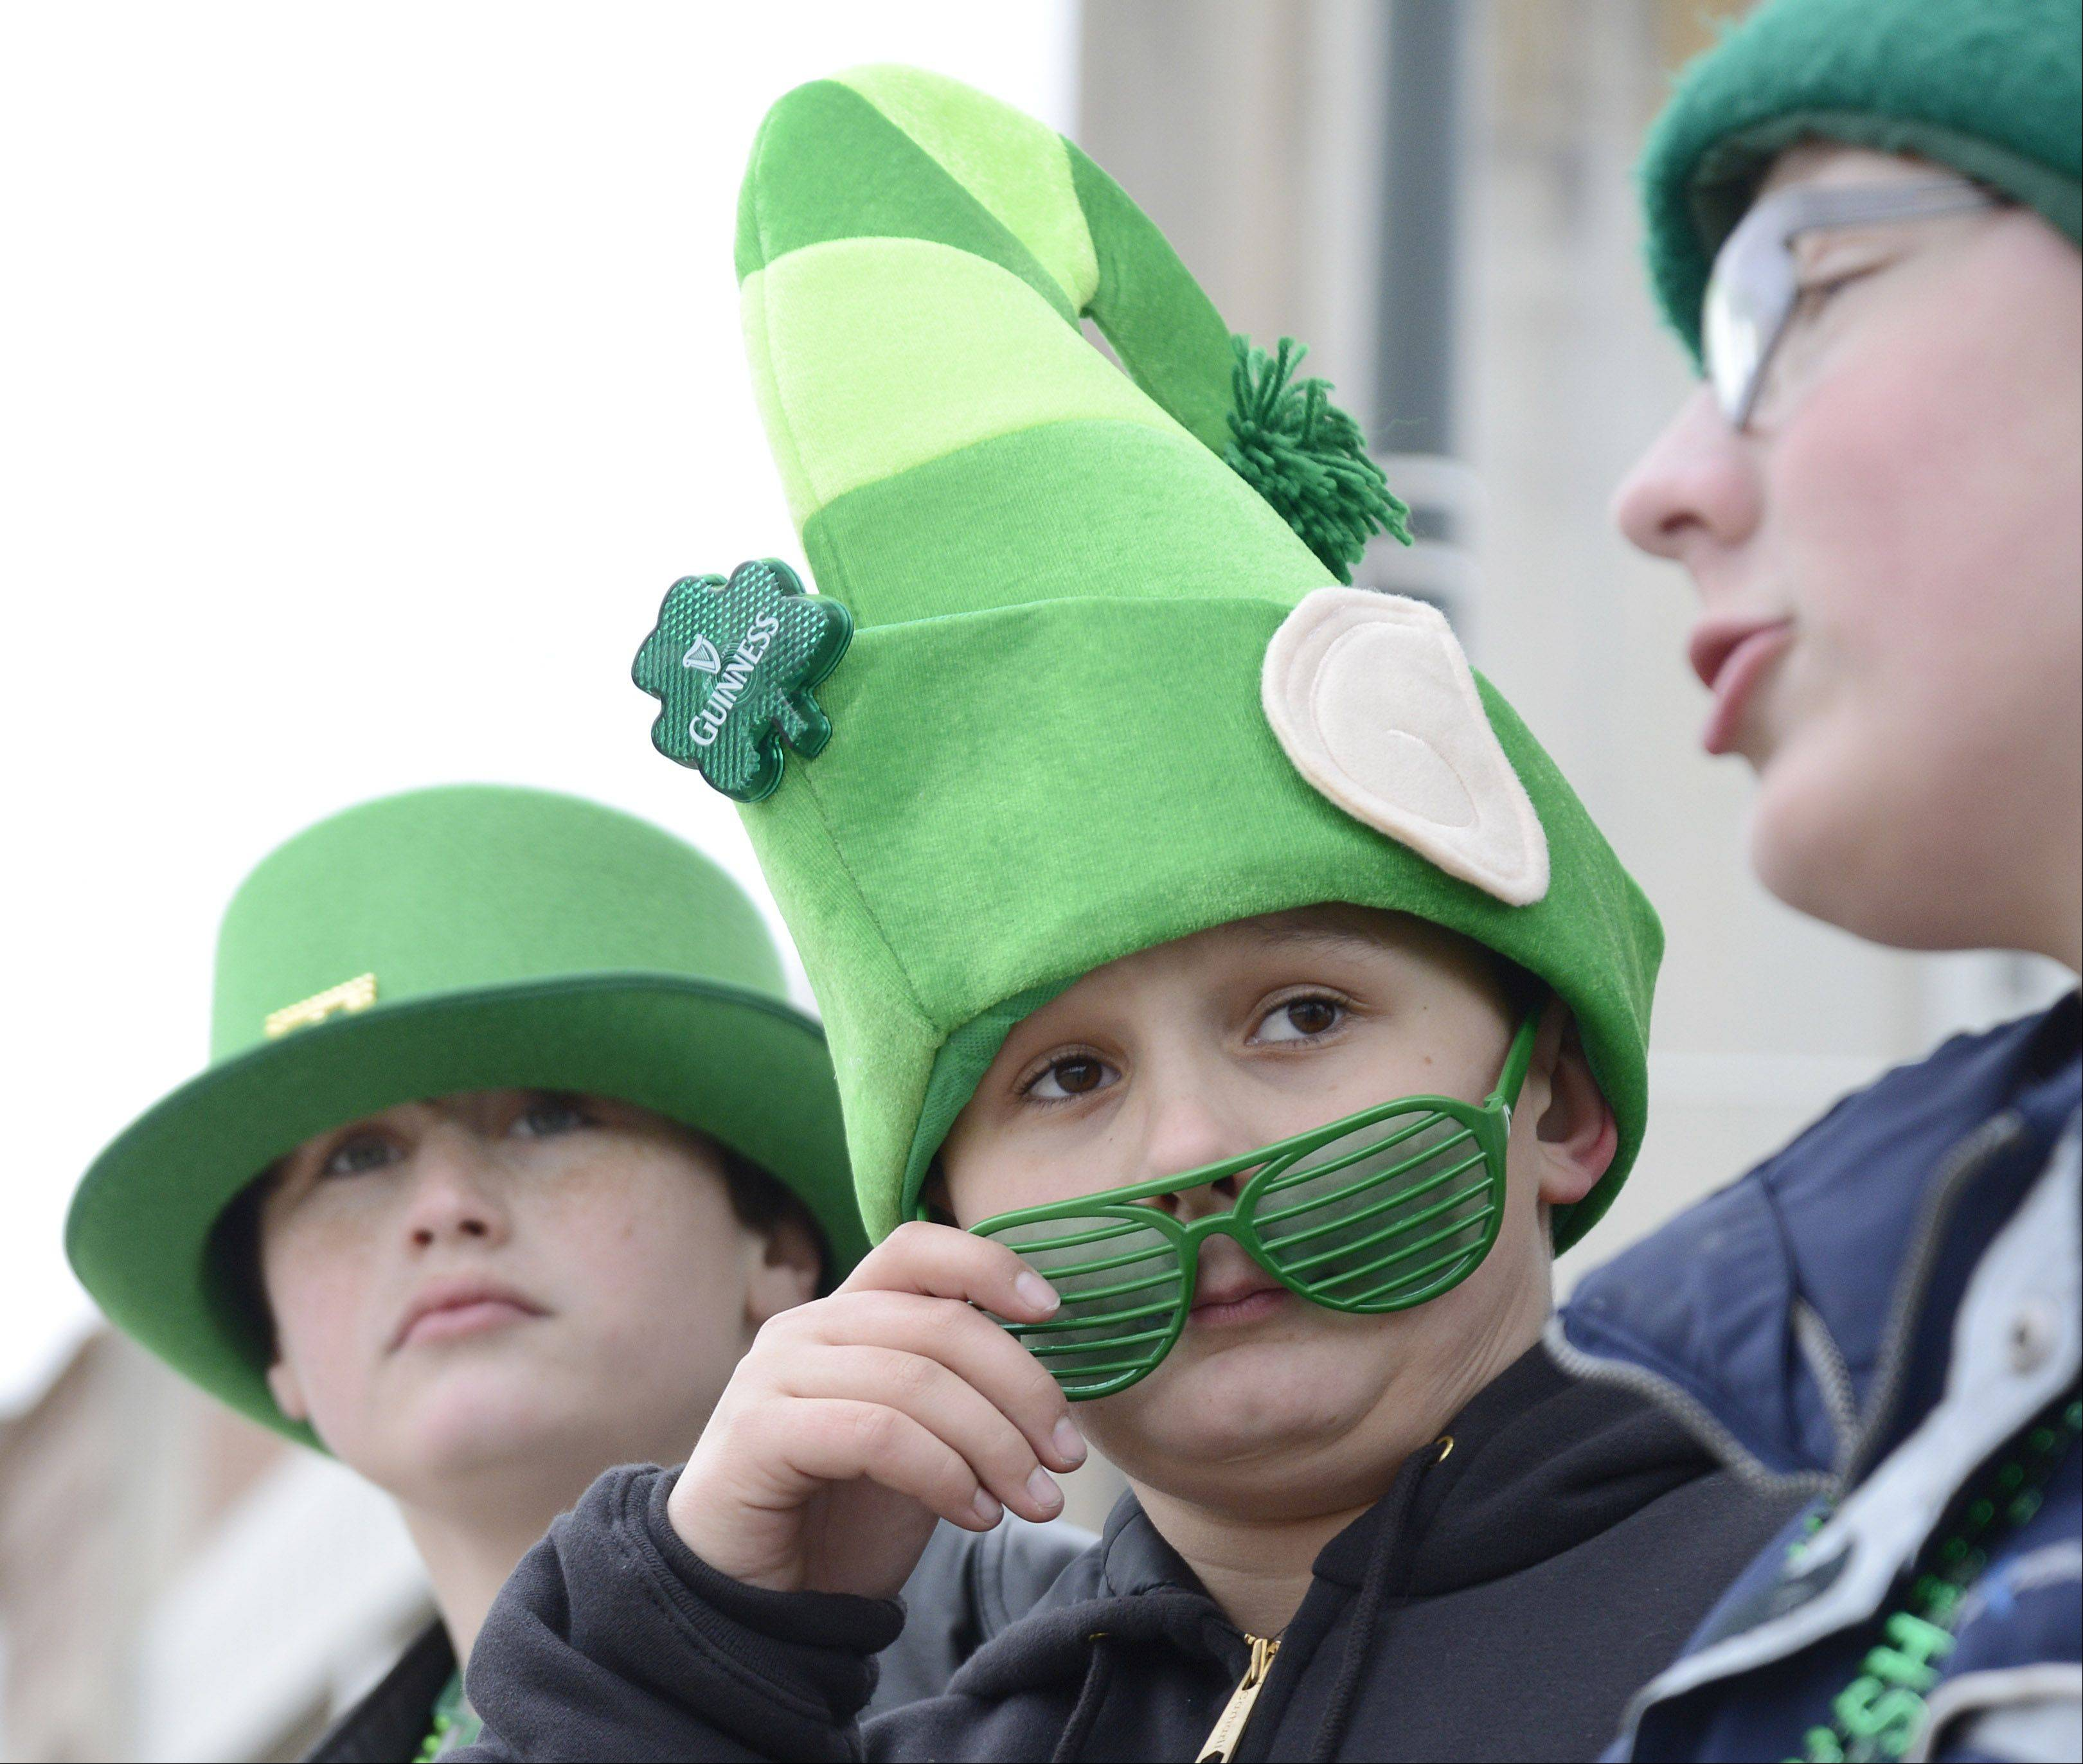 Joe Hanisch, 12, of St. Charles takes a peek at what's coming next in the St. Patrick's Day parade in St. Charles on Saturday. His birthday falls on St. Patrick's Day.